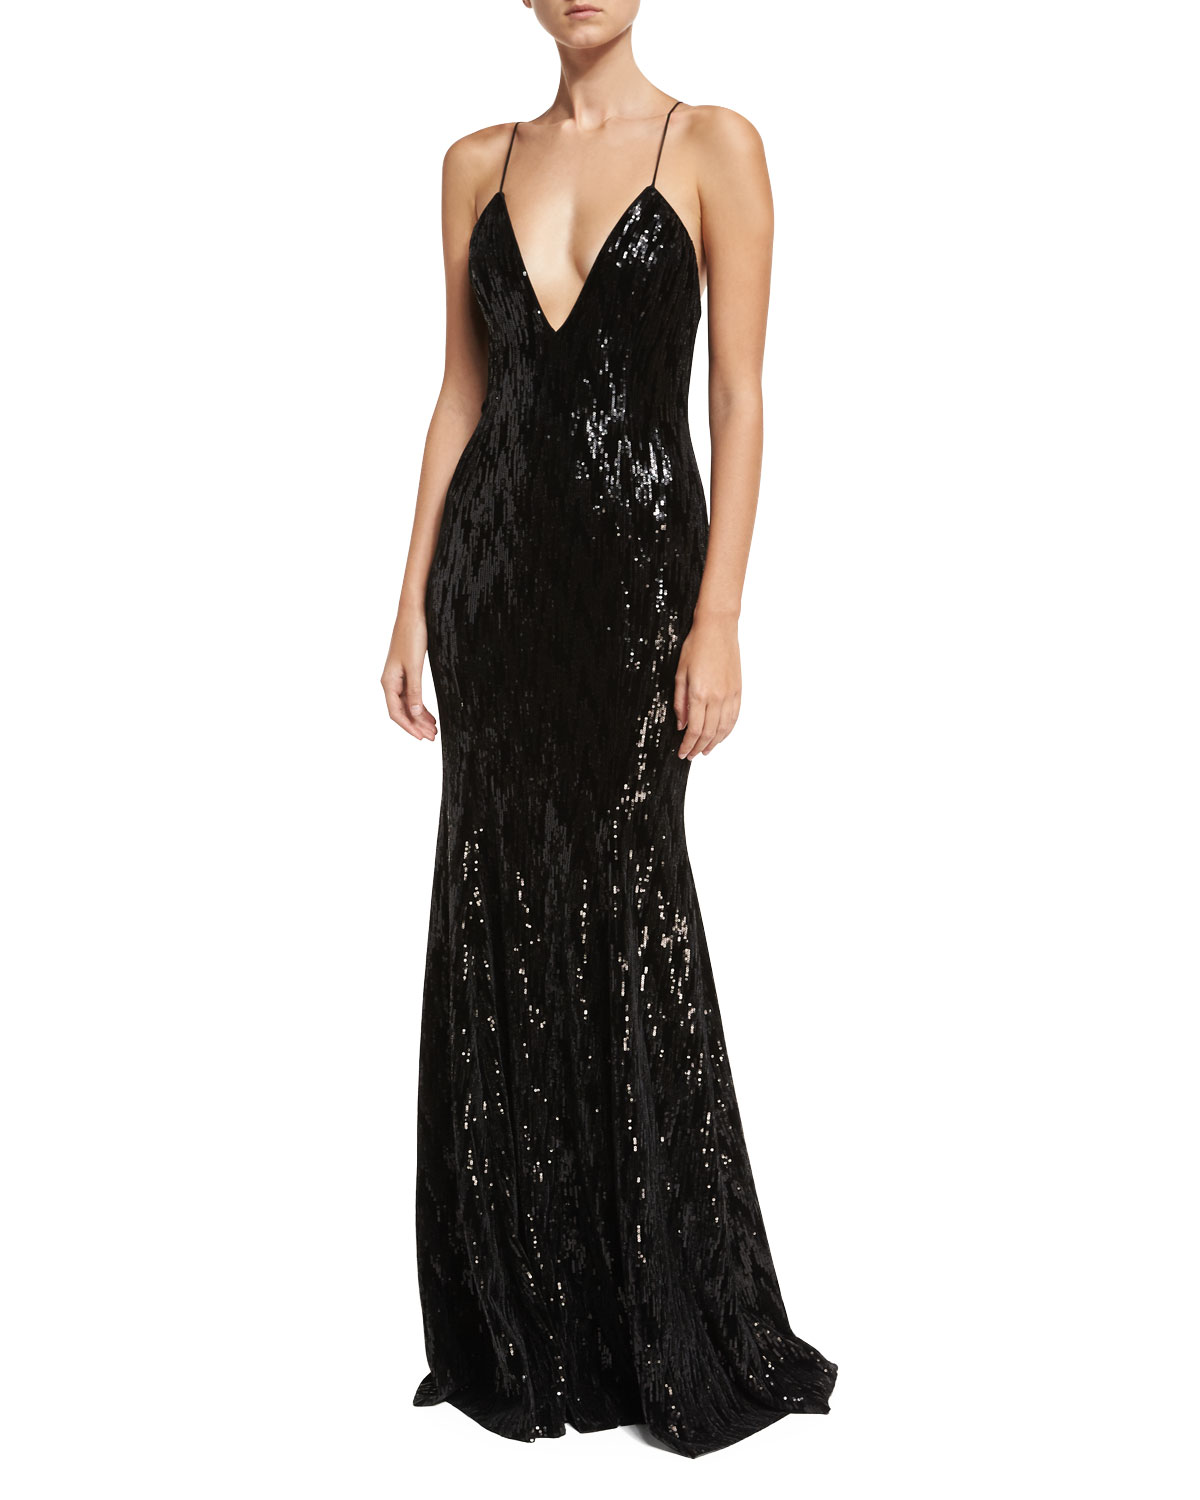 80e134fce74a6 Quick Look. Jay Godfrey · Major Deep V-Neck Sleeveless Velvet Sequin  Evening Gown. Available in Black